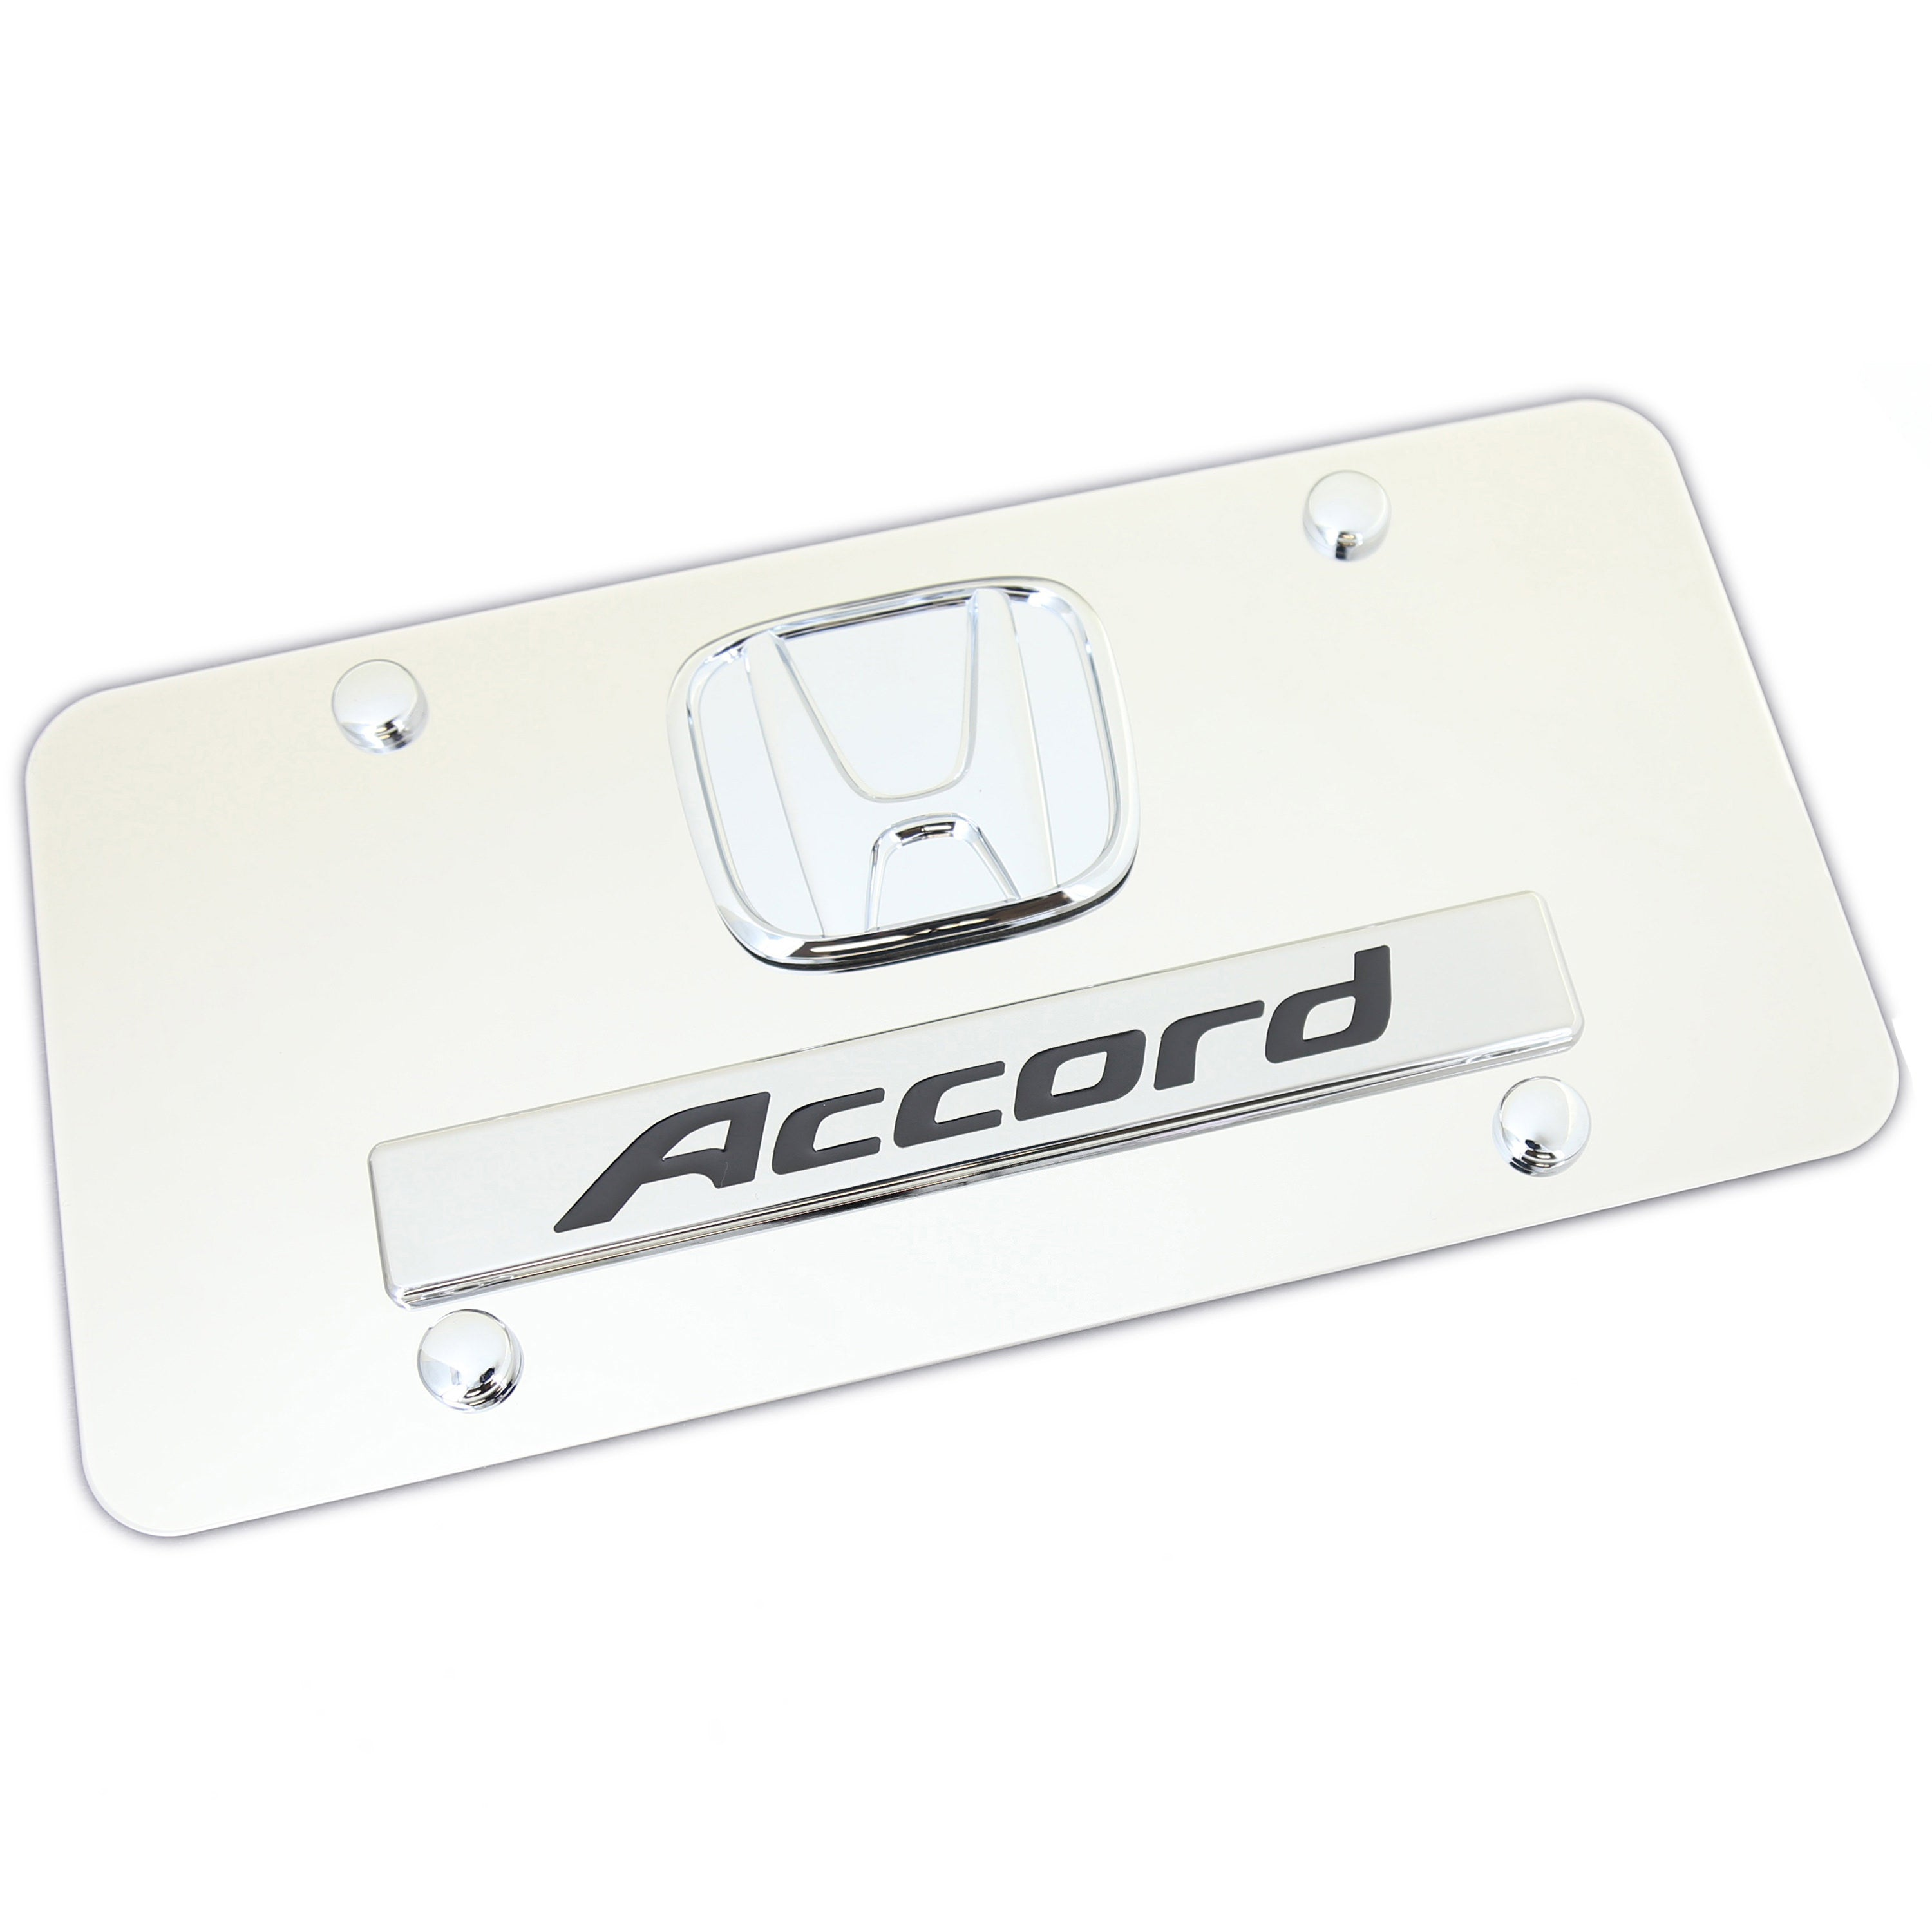 Honda Accord Dual Logo License Plate (Chrome) - Custom Werks